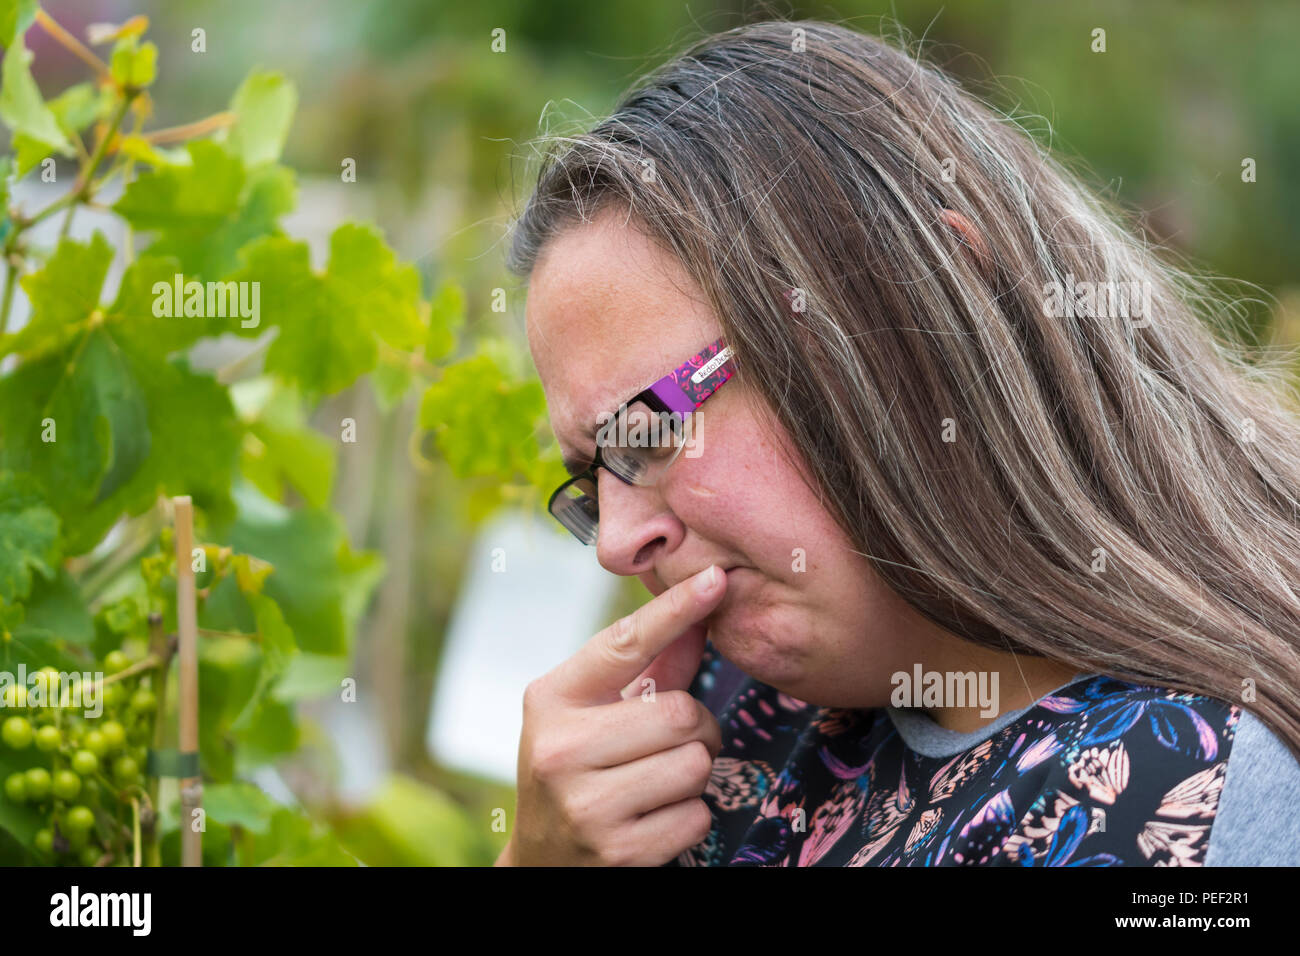 A woman making an inquisitive facial expression while trying to make a choice. Decision making concept. Trying to decide.Lots of options. - Stock Image